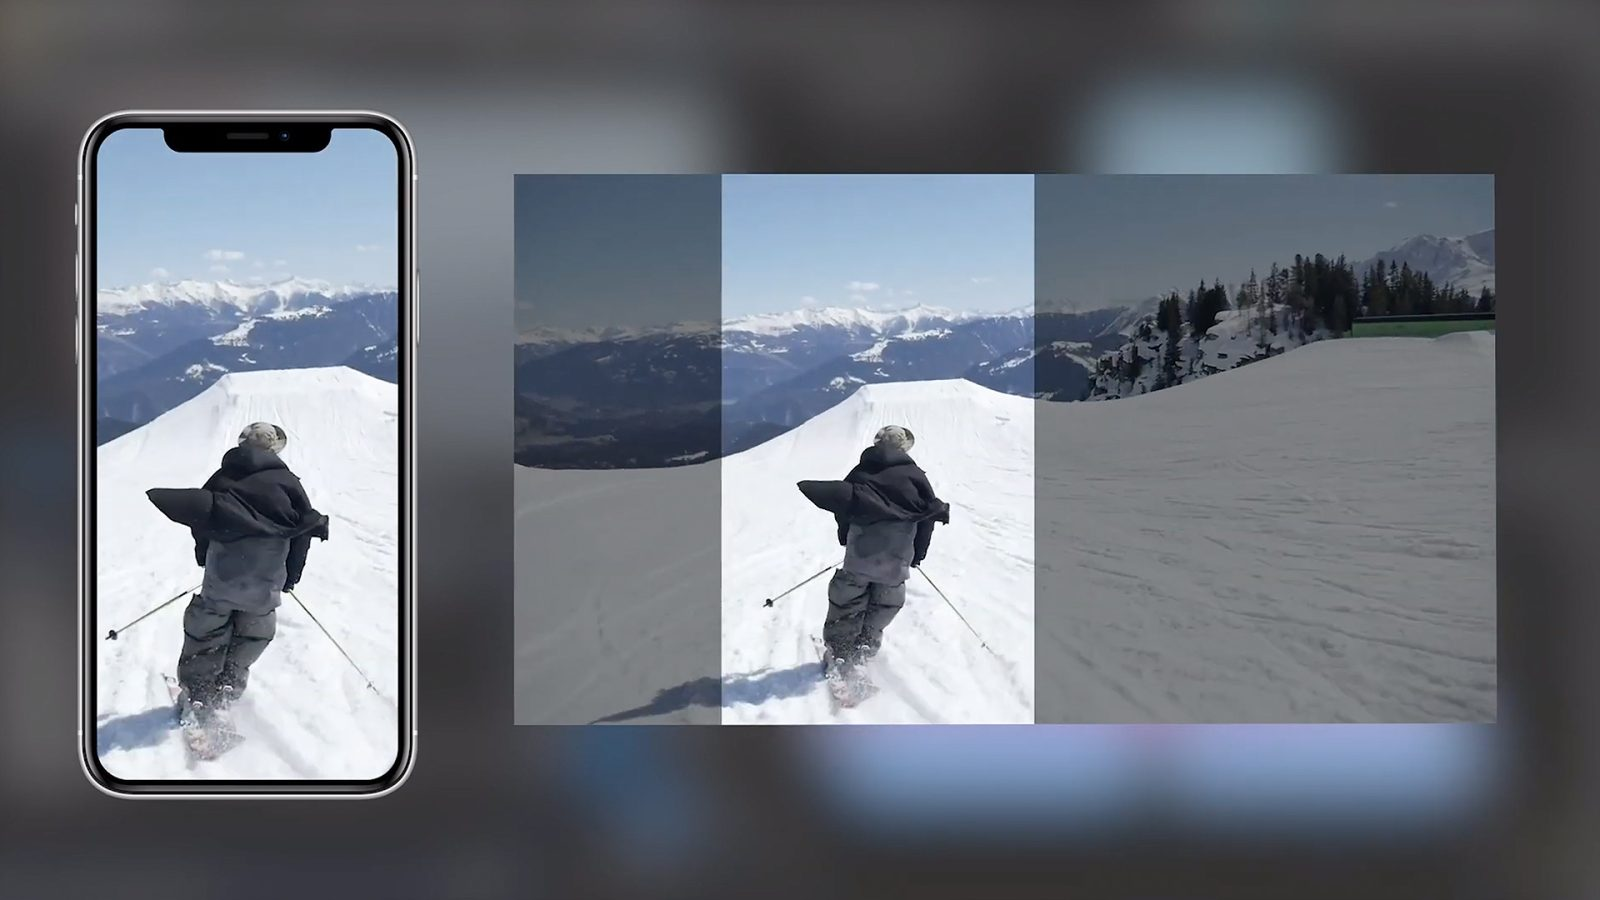 Adobe adds Auto Reframe to Premiere Pro for quick vertical video